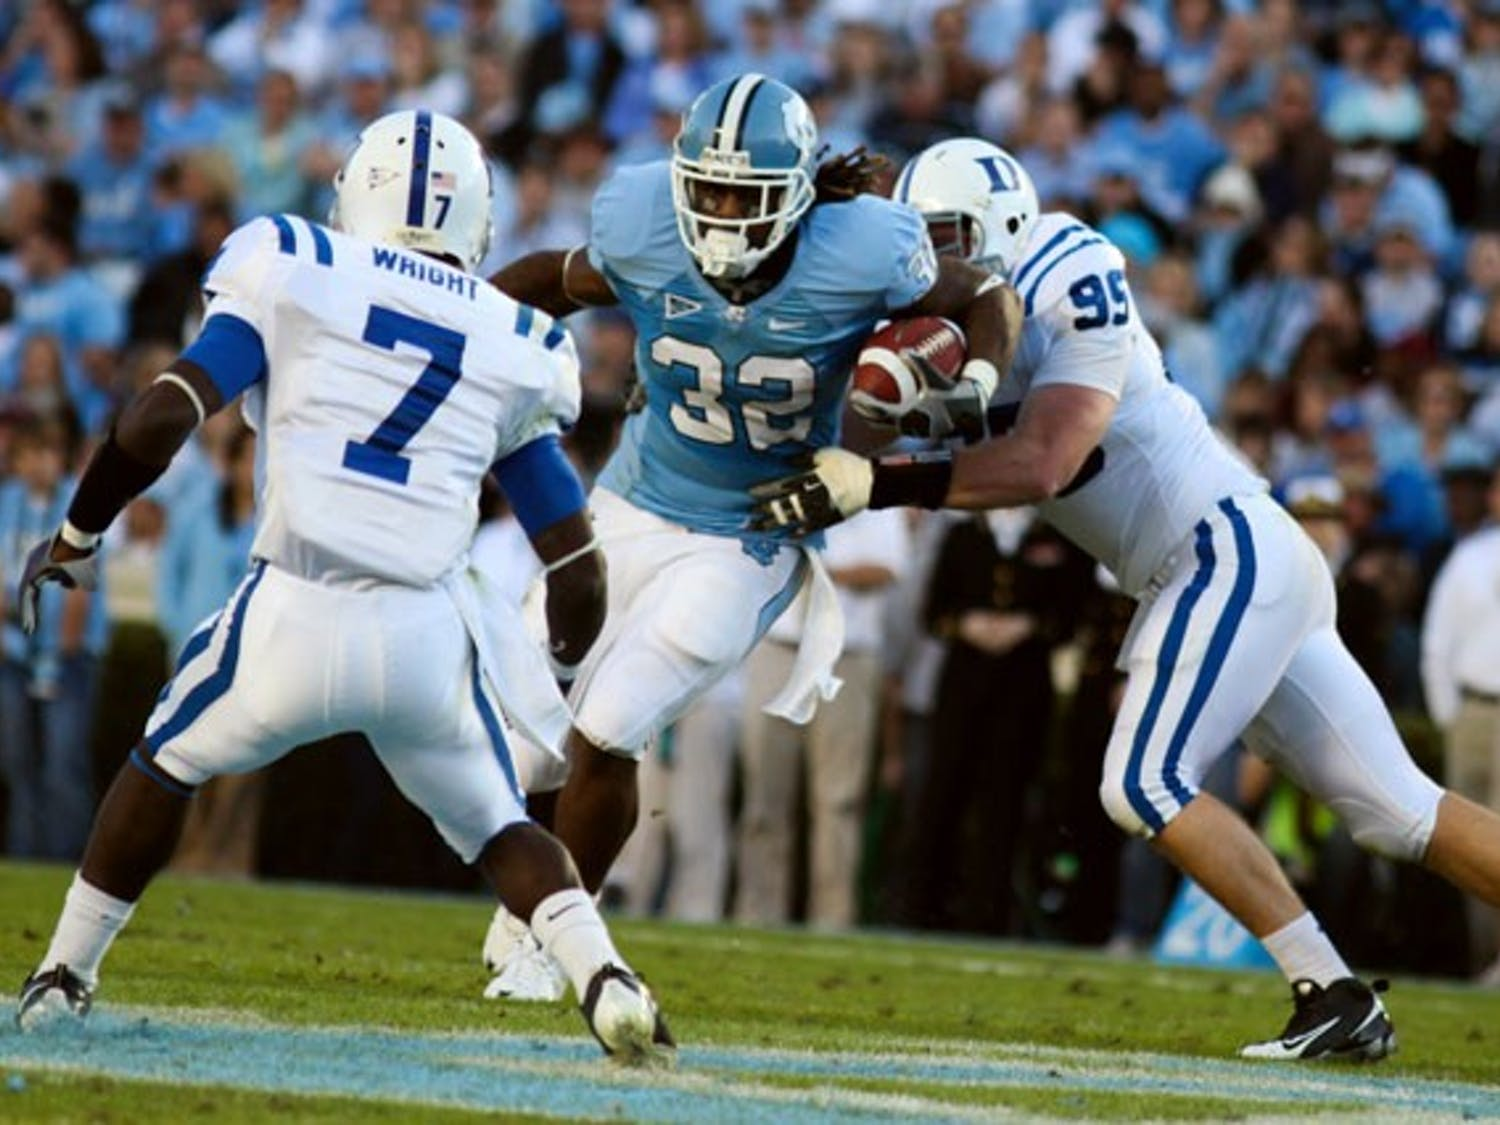 Junior running back Ryan Houston ran for a career-high 164 yards in UNC's last game. DTH File/Phong Dinh